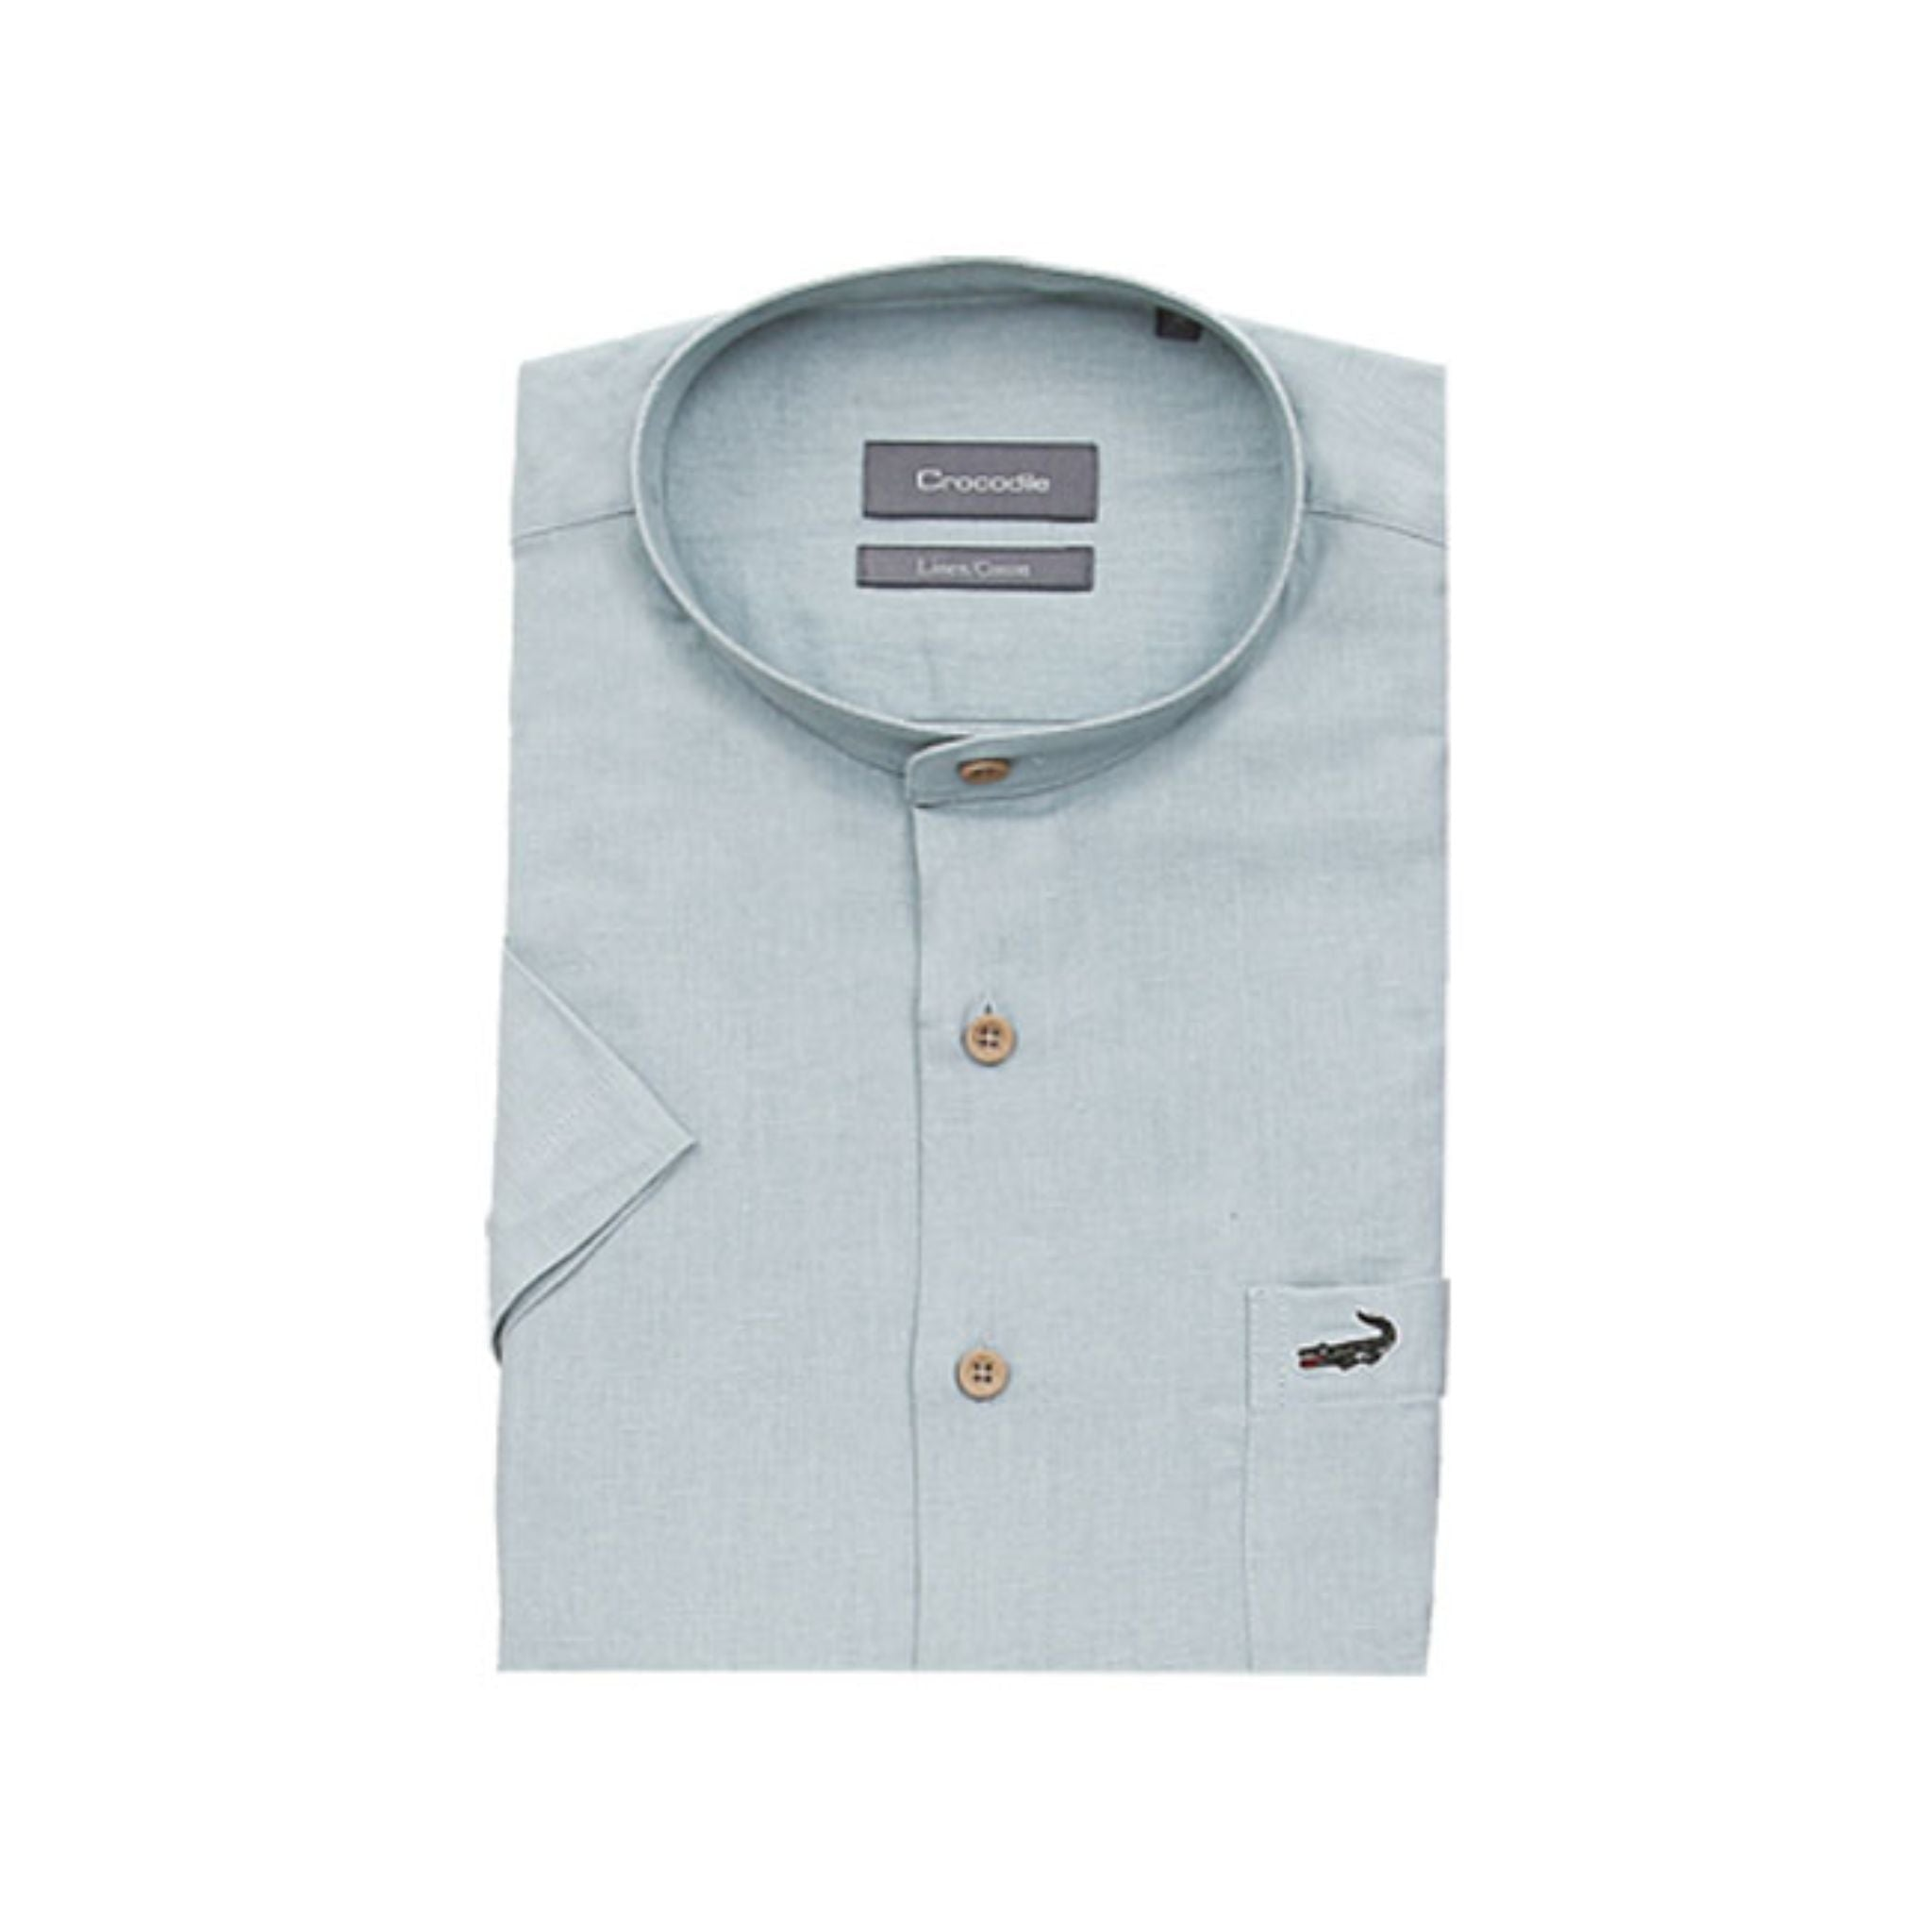 Crocodile Short-sleeved Shirt - Light Green